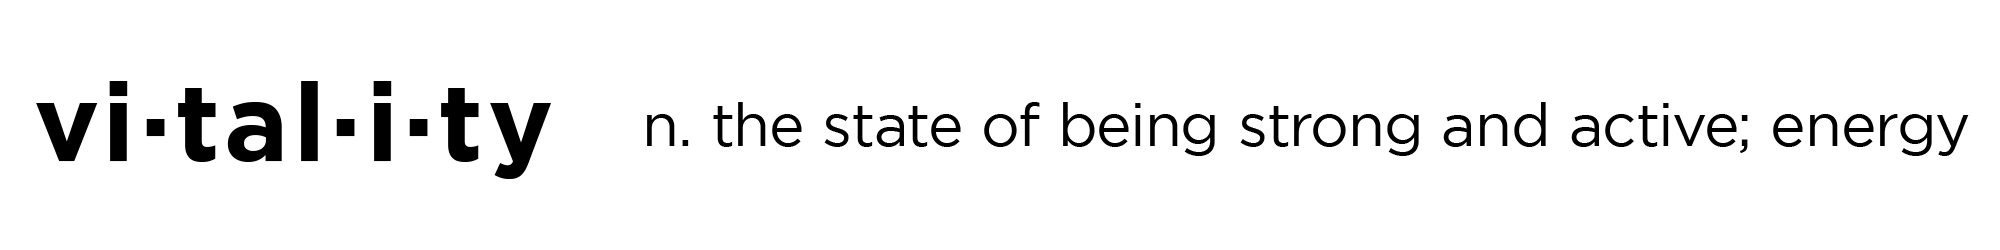 vf-site-decal-black.png